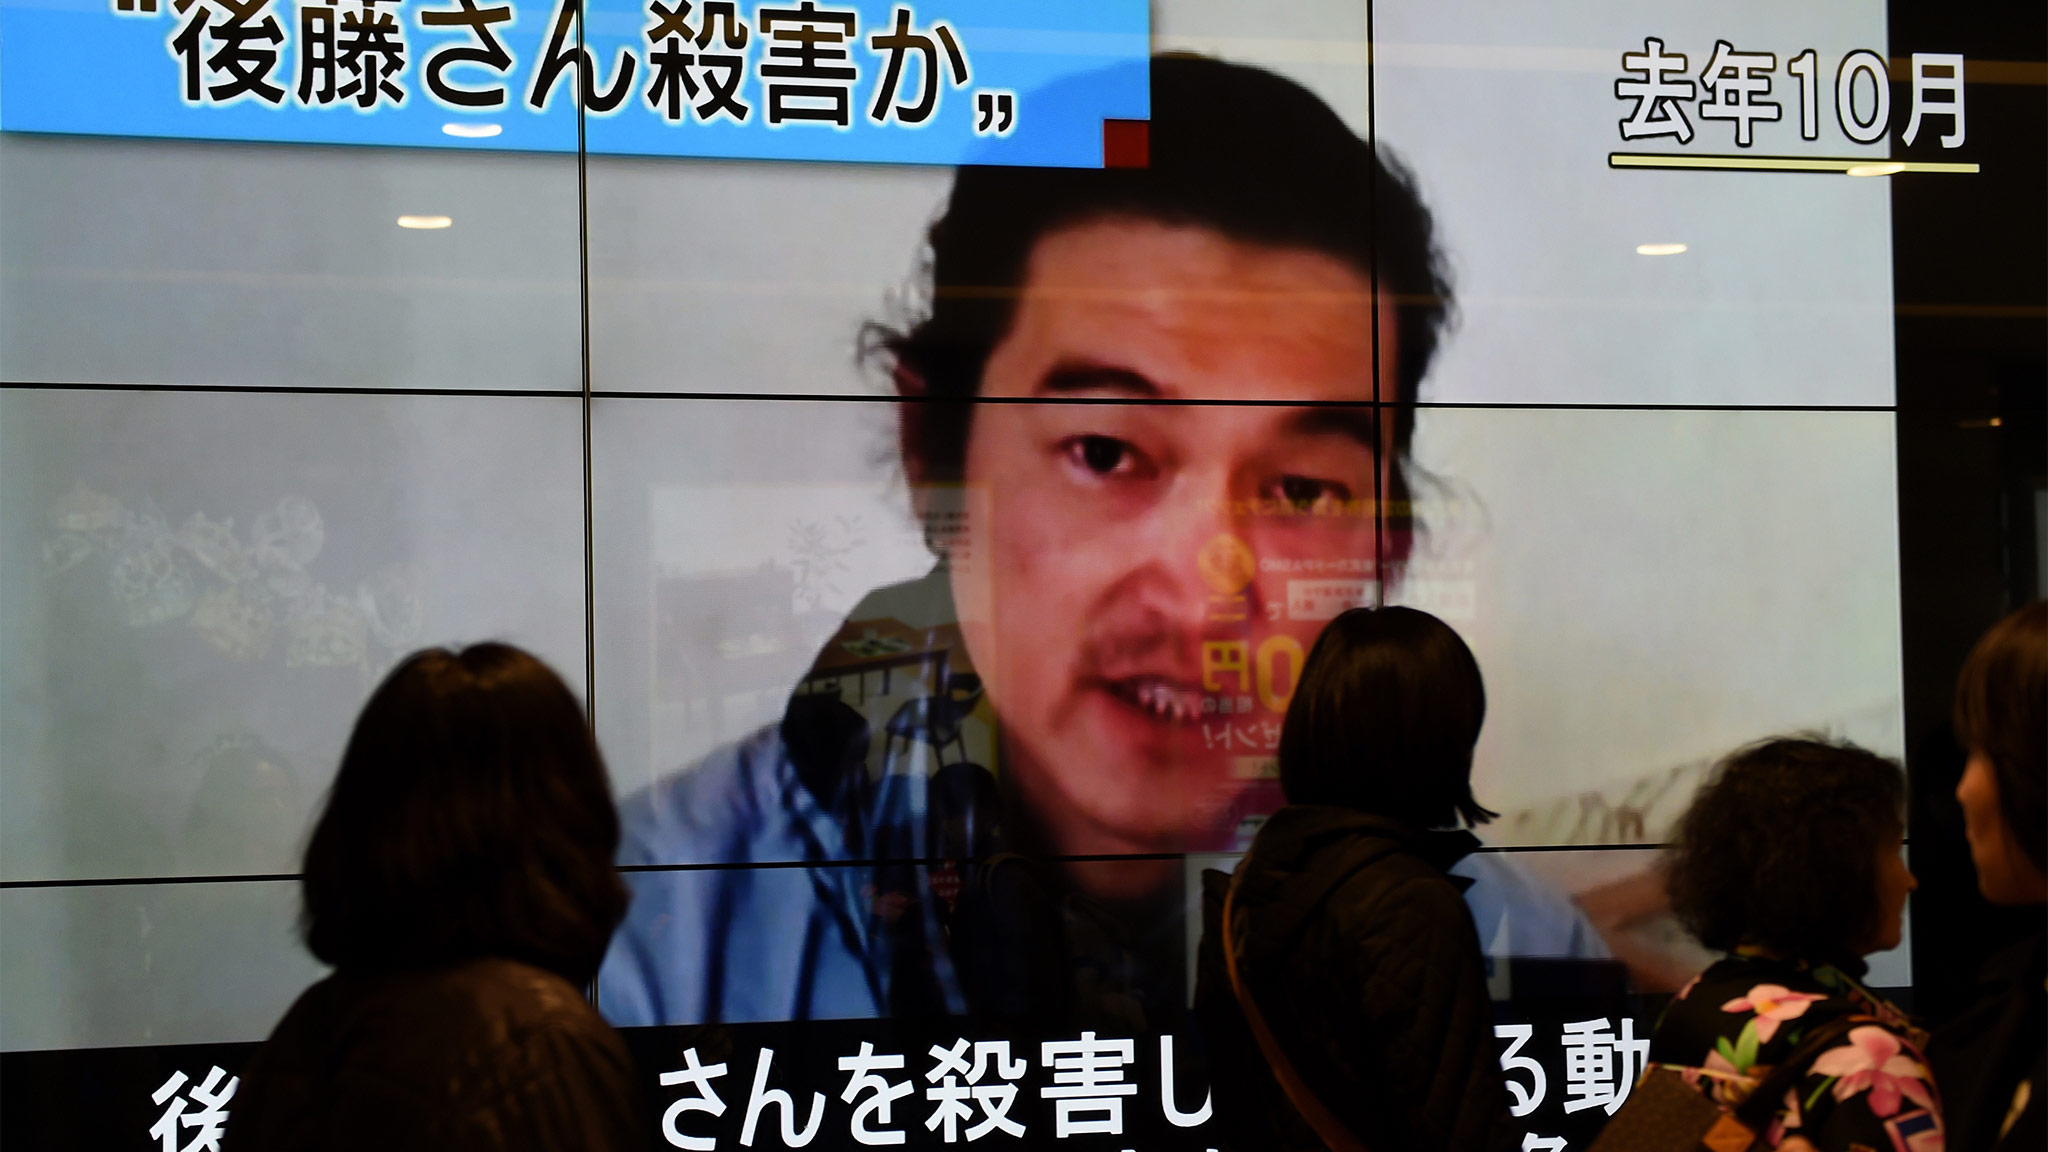 Horror in Japan as Isis claims second hostage killed